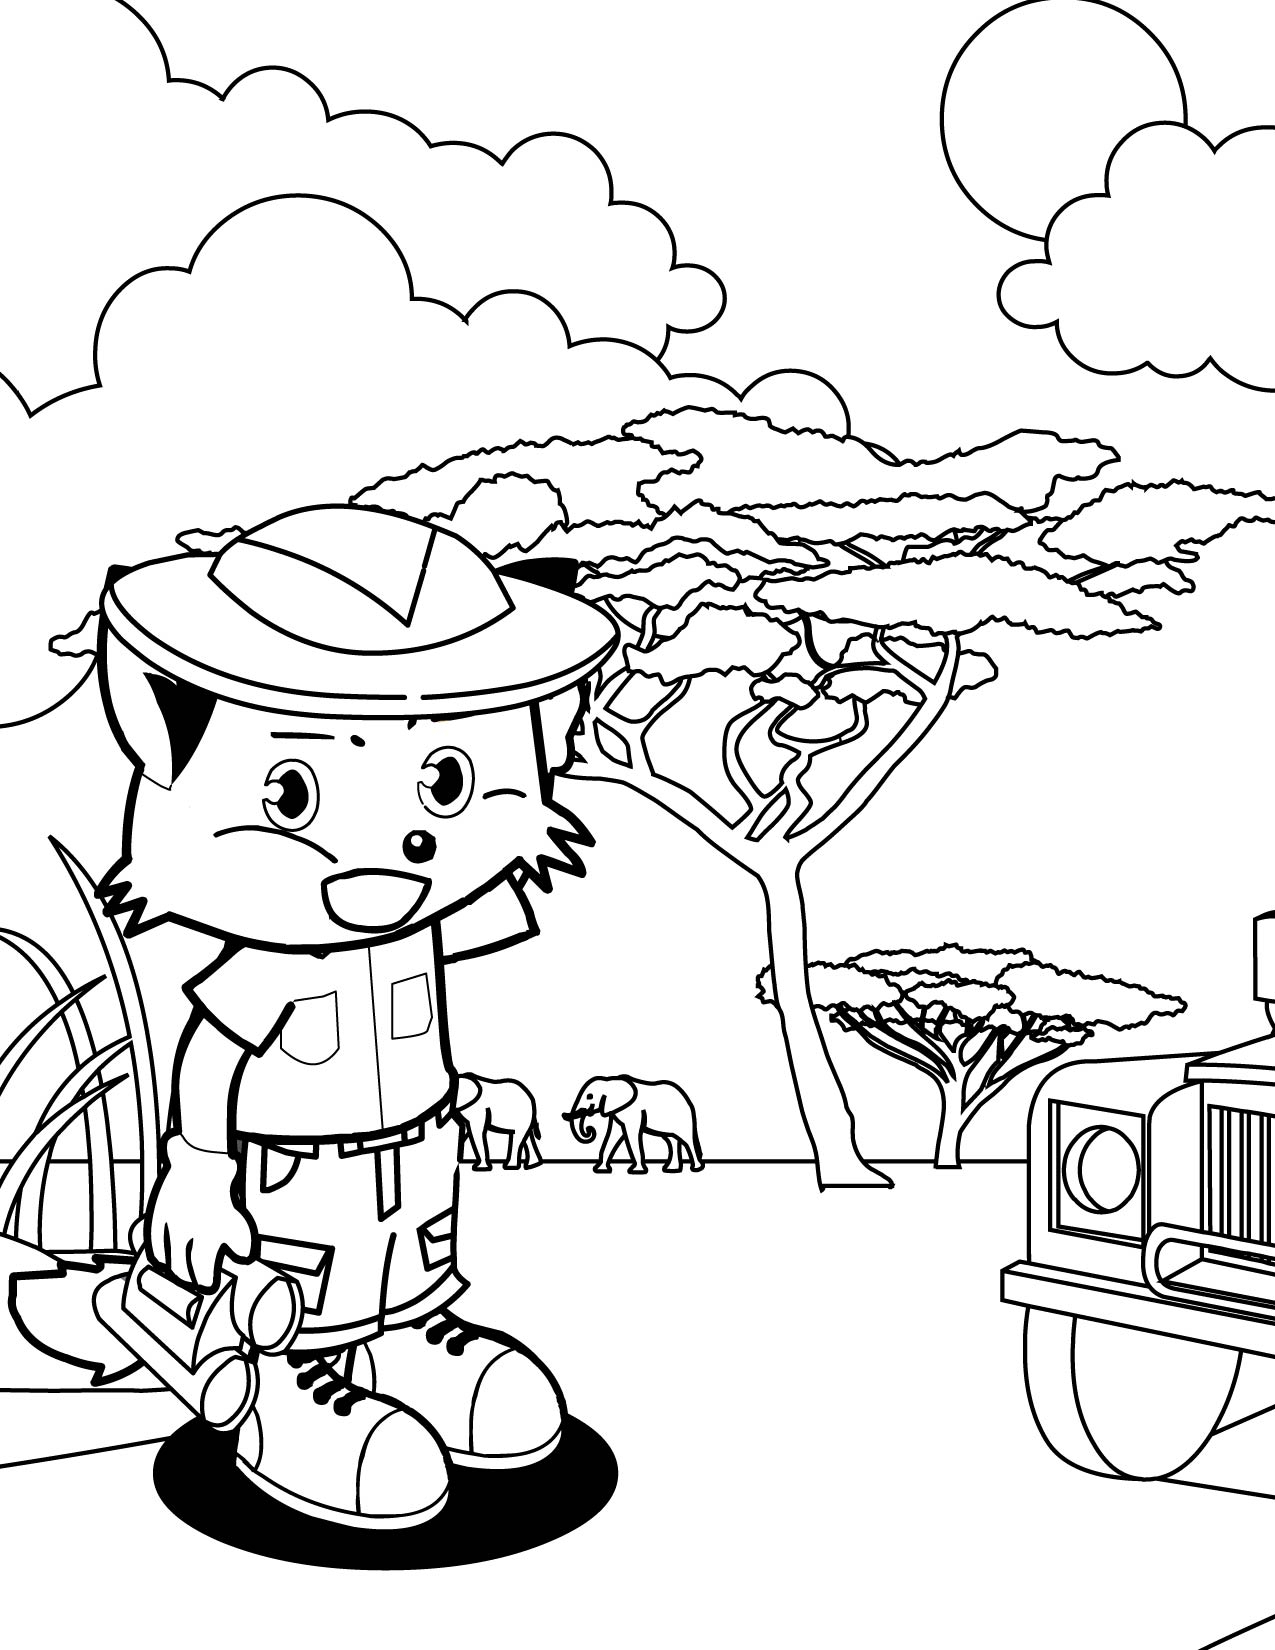 Coloring Pages For Safari - Worksheet & Coloring Pages